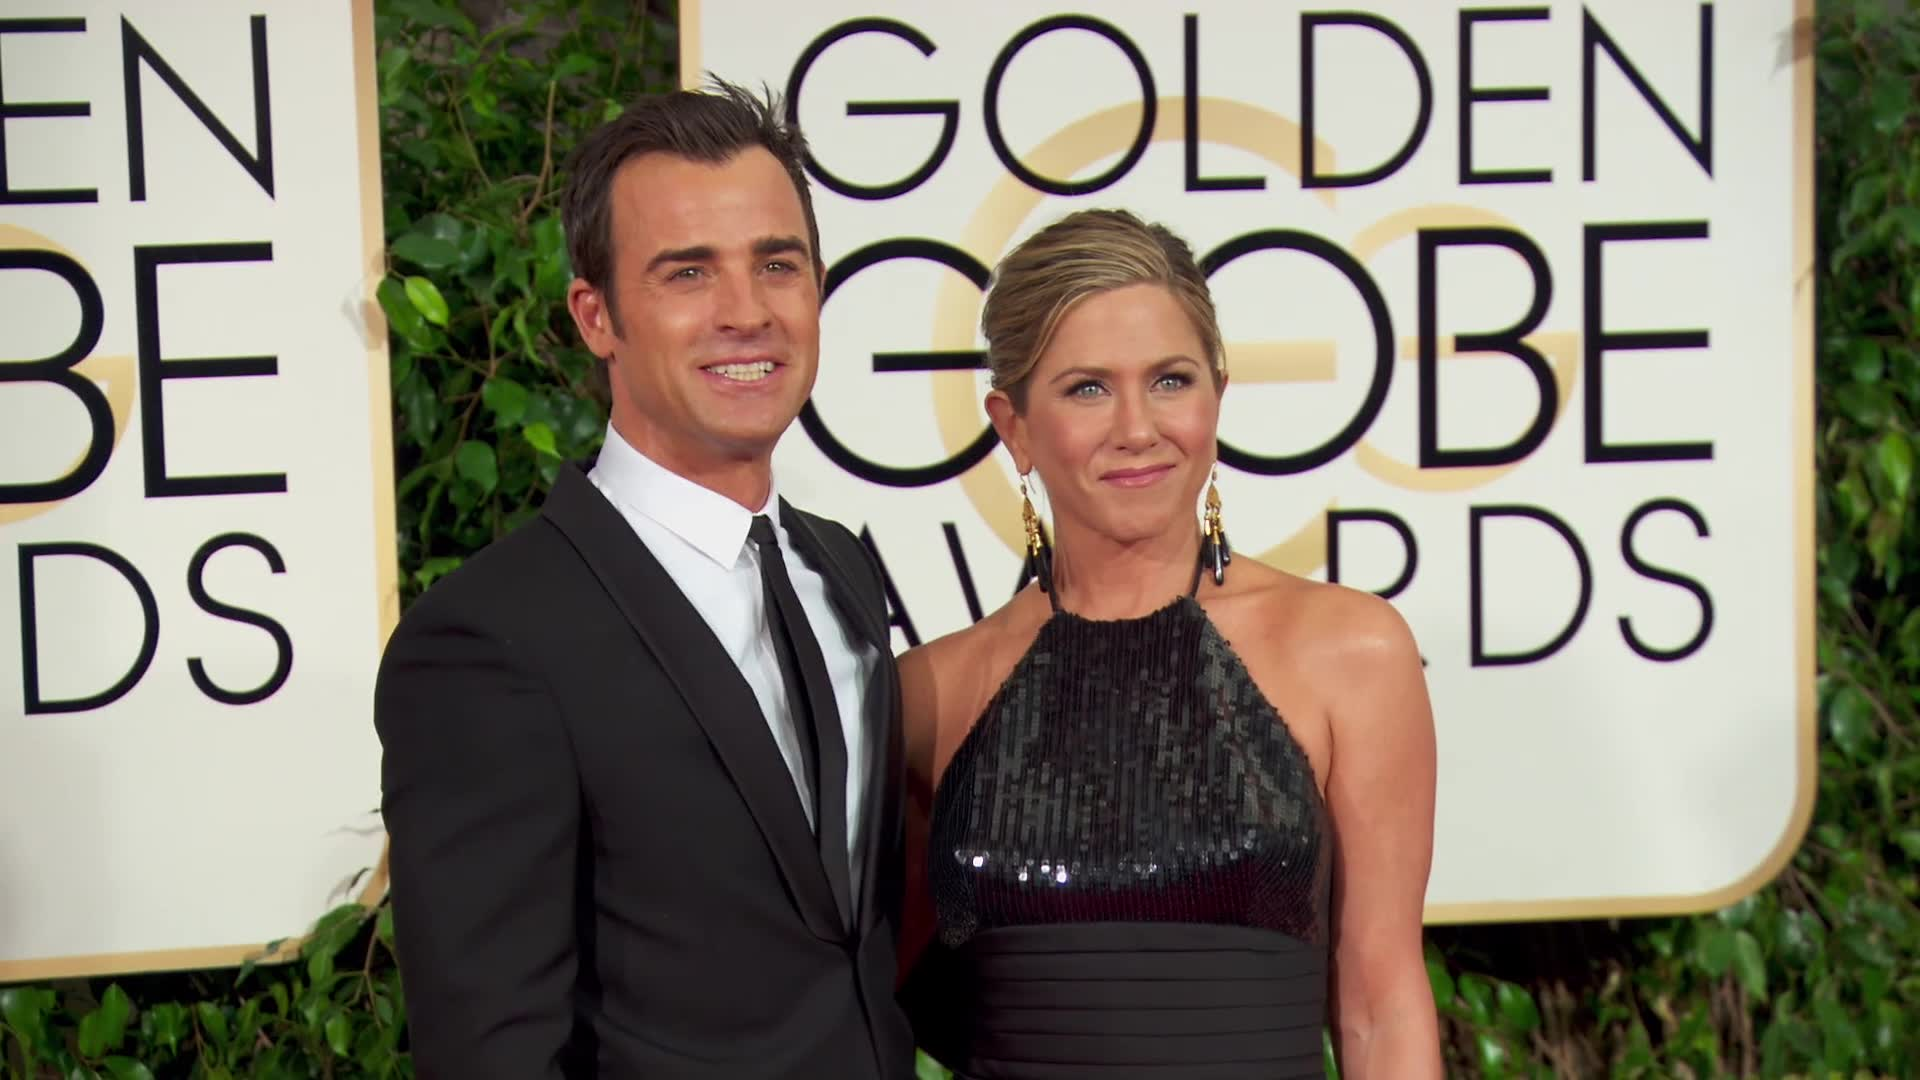 Justin Theroux Says Marriage With Jennifer Aniston 'Does Feel Different'